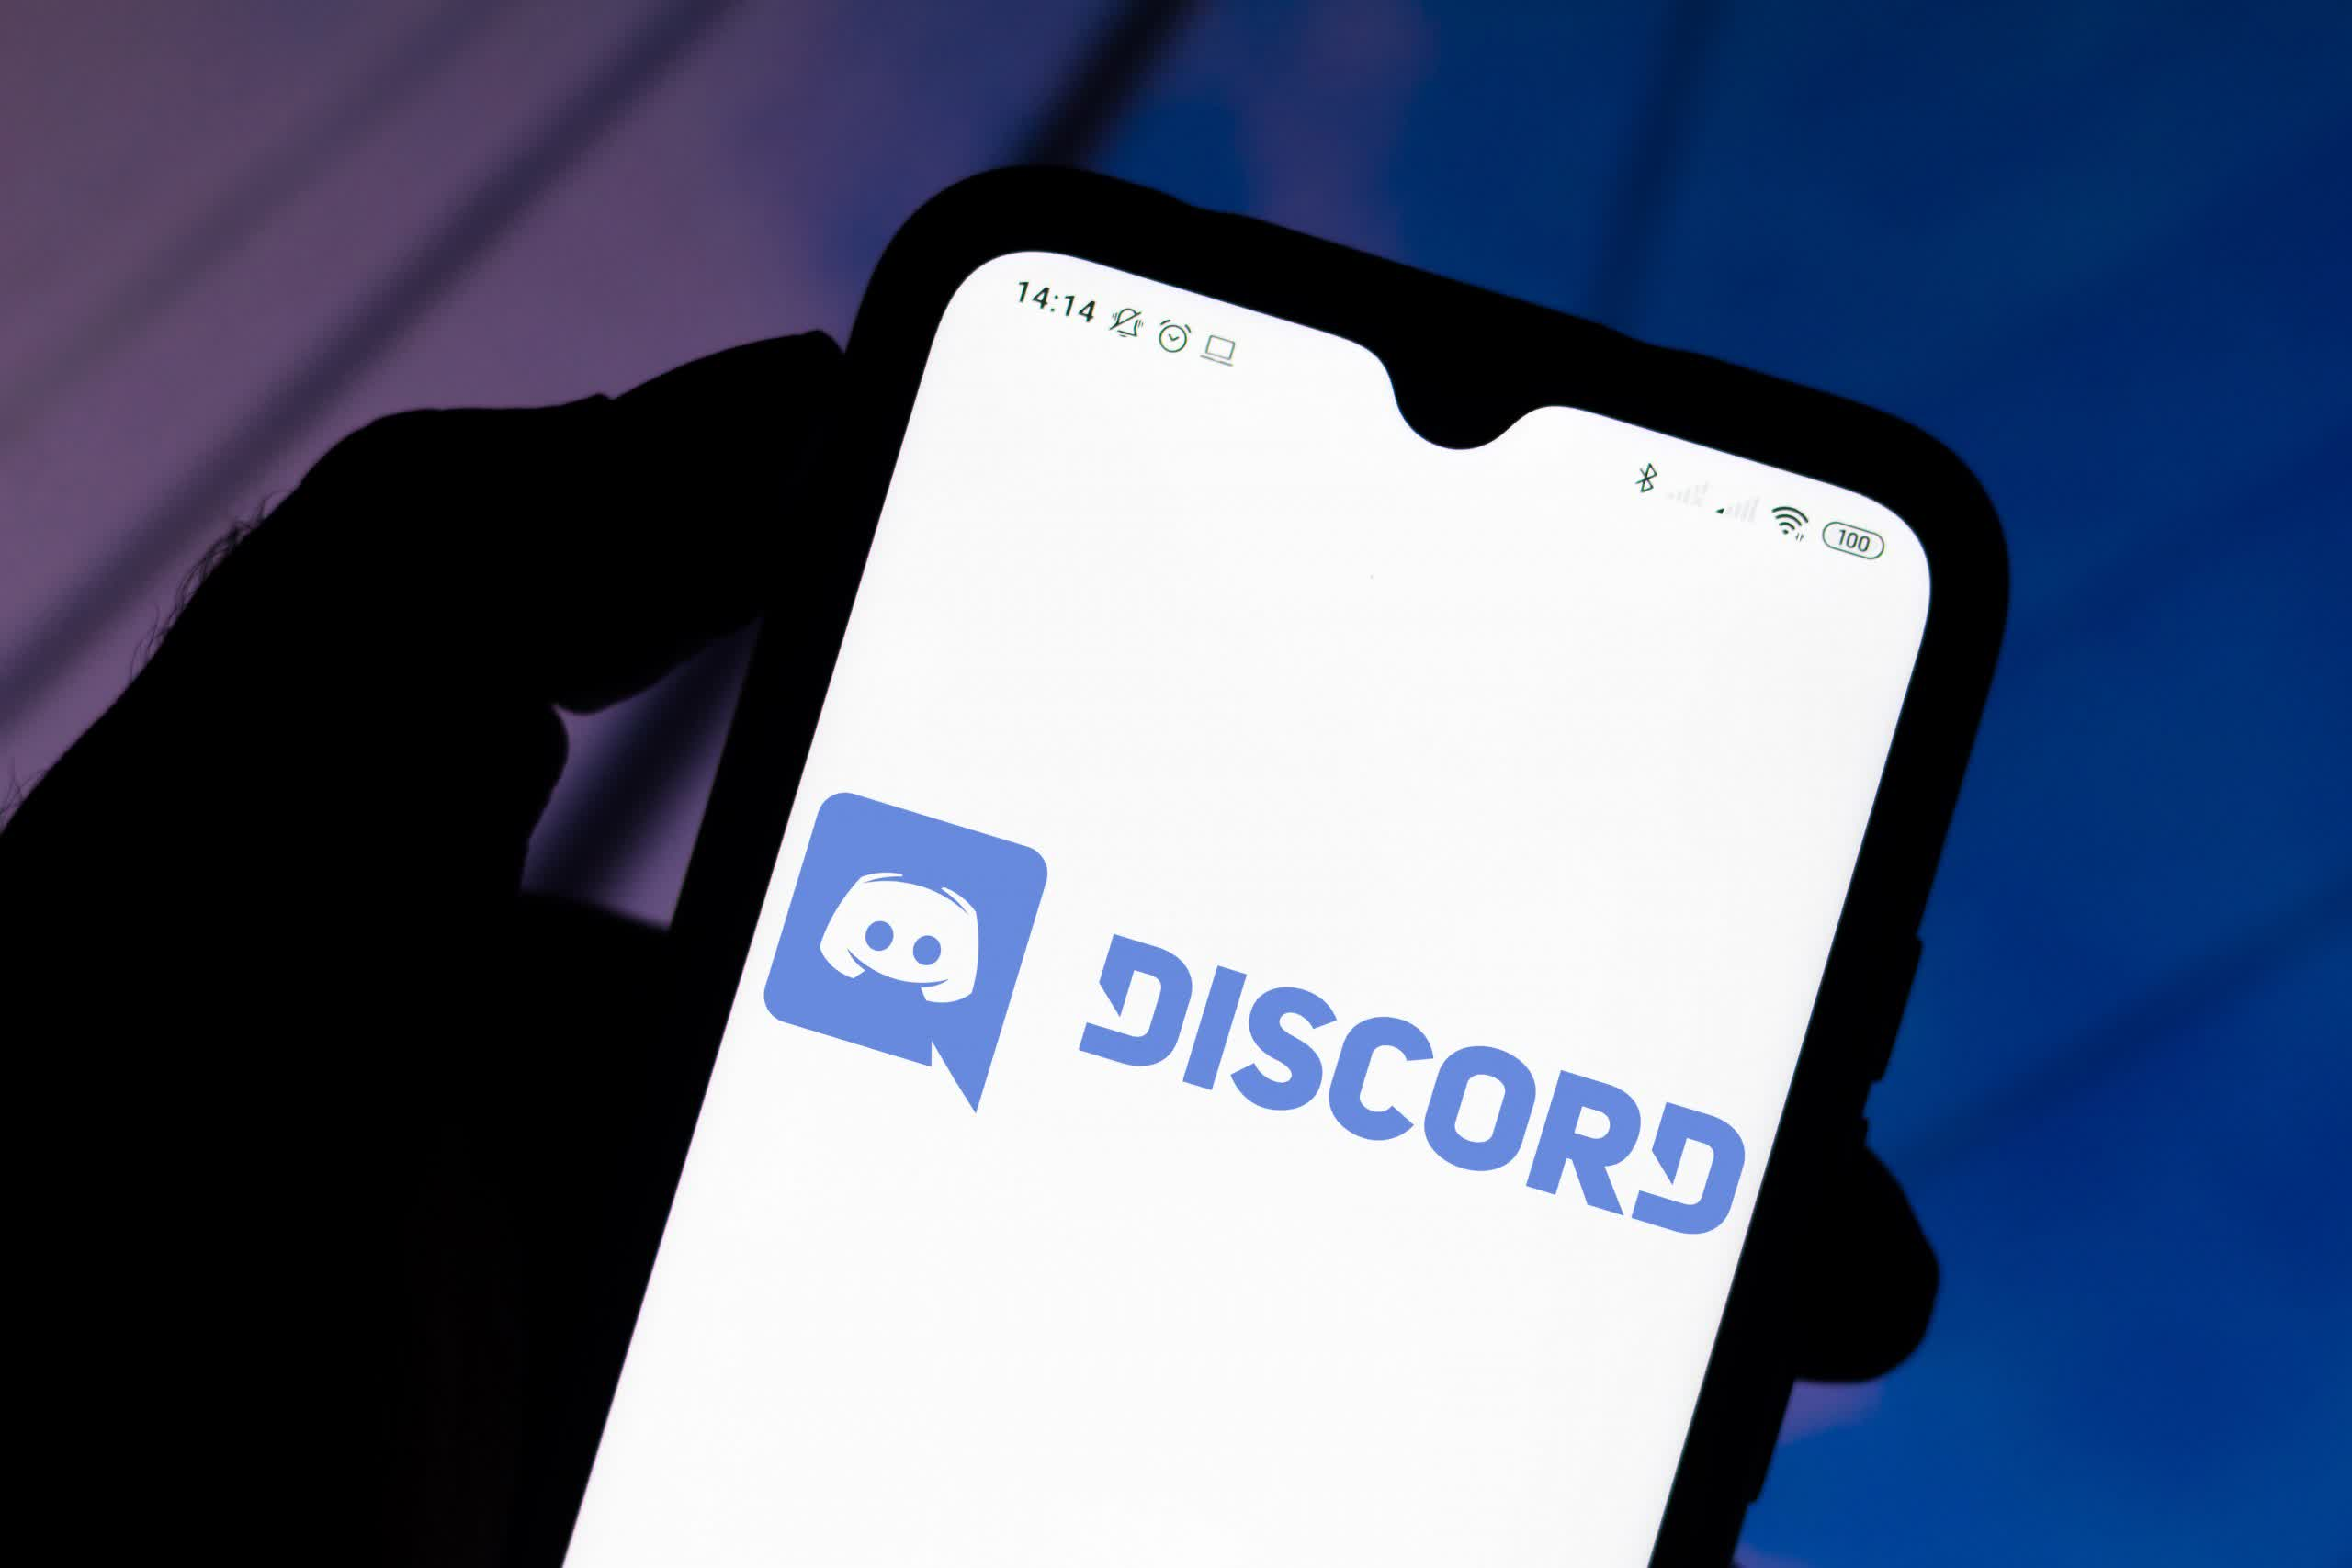 Discord blocks access to NSFW servers but only for iOS app users